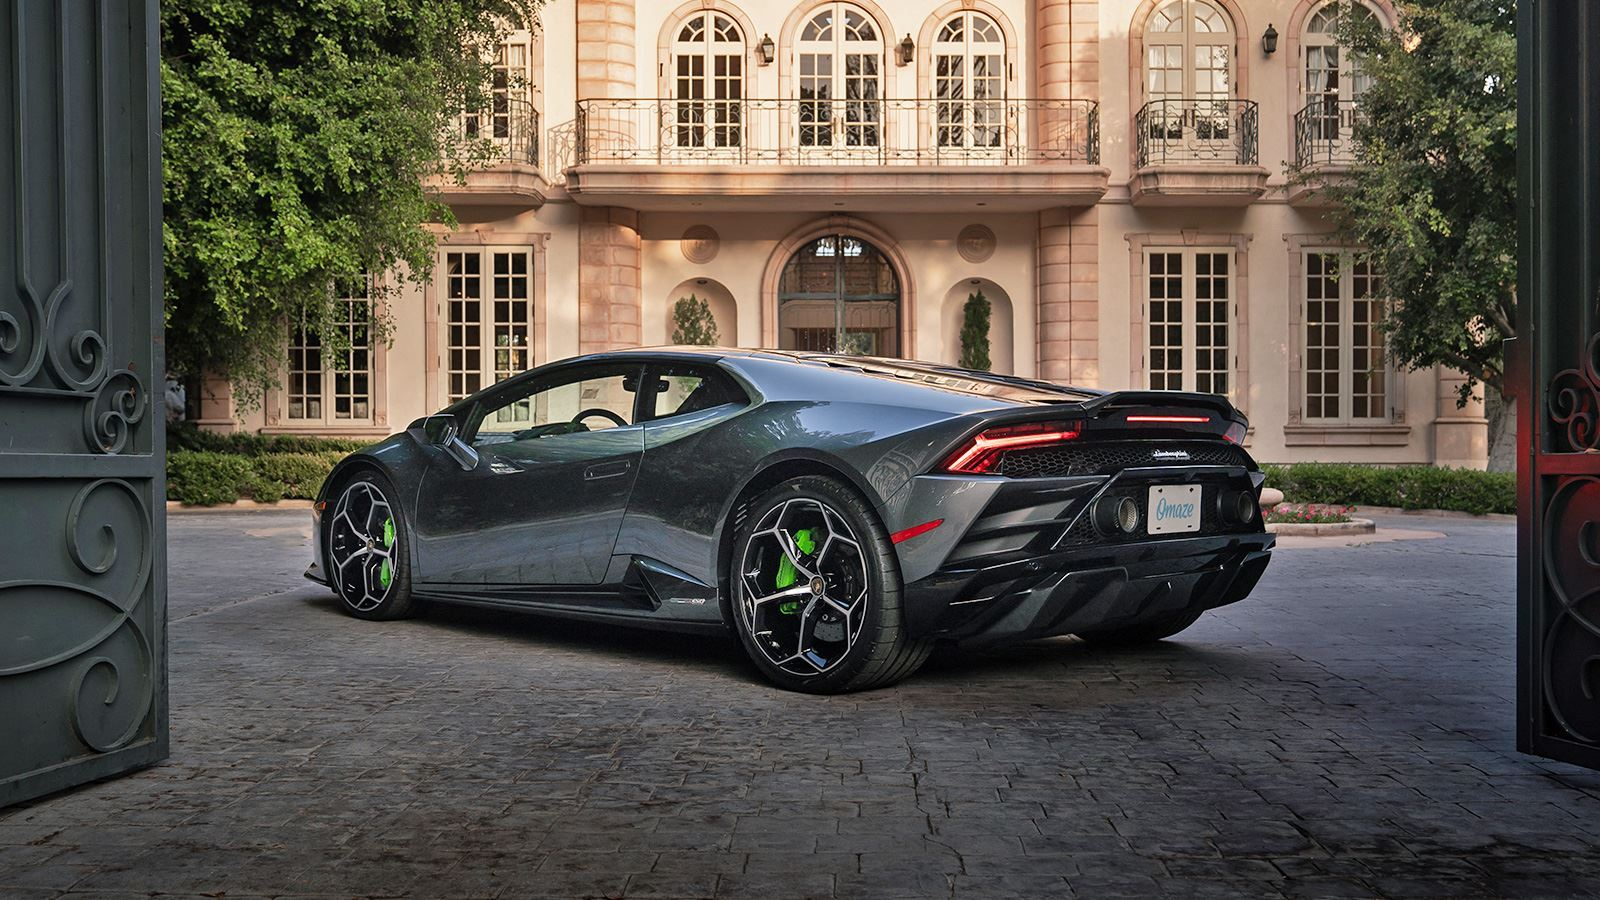 Automobili Lamborghini and Lady Gaga team up for charity sweepstake to support communities disproportionately impacted by the pandemic - Image 2